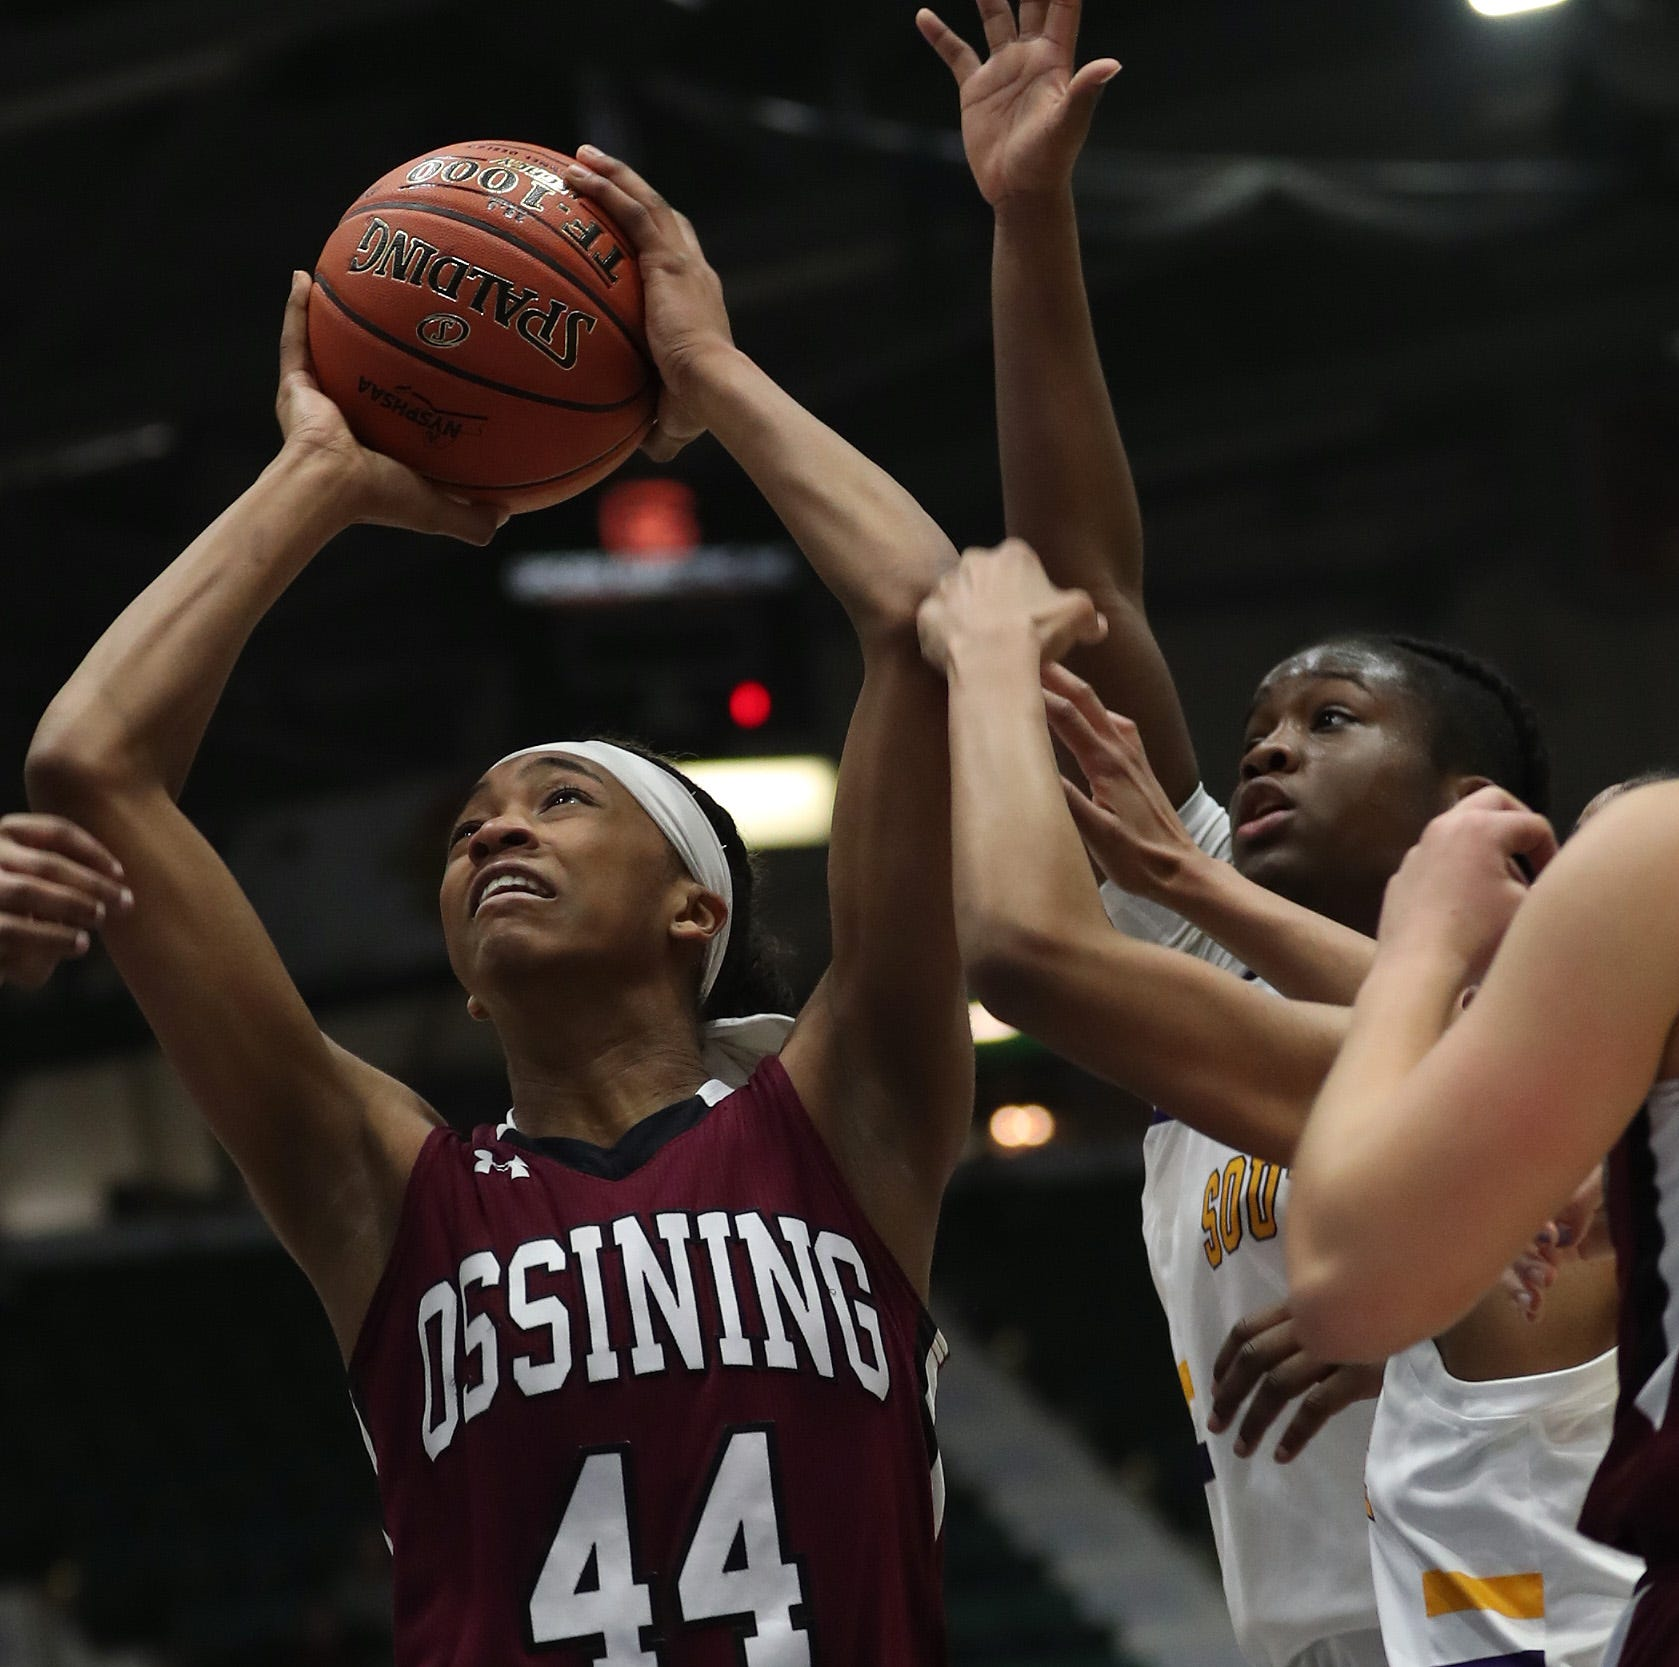 Girls basketball: Ossining survives thrilling overtime battle in Federation semifinal